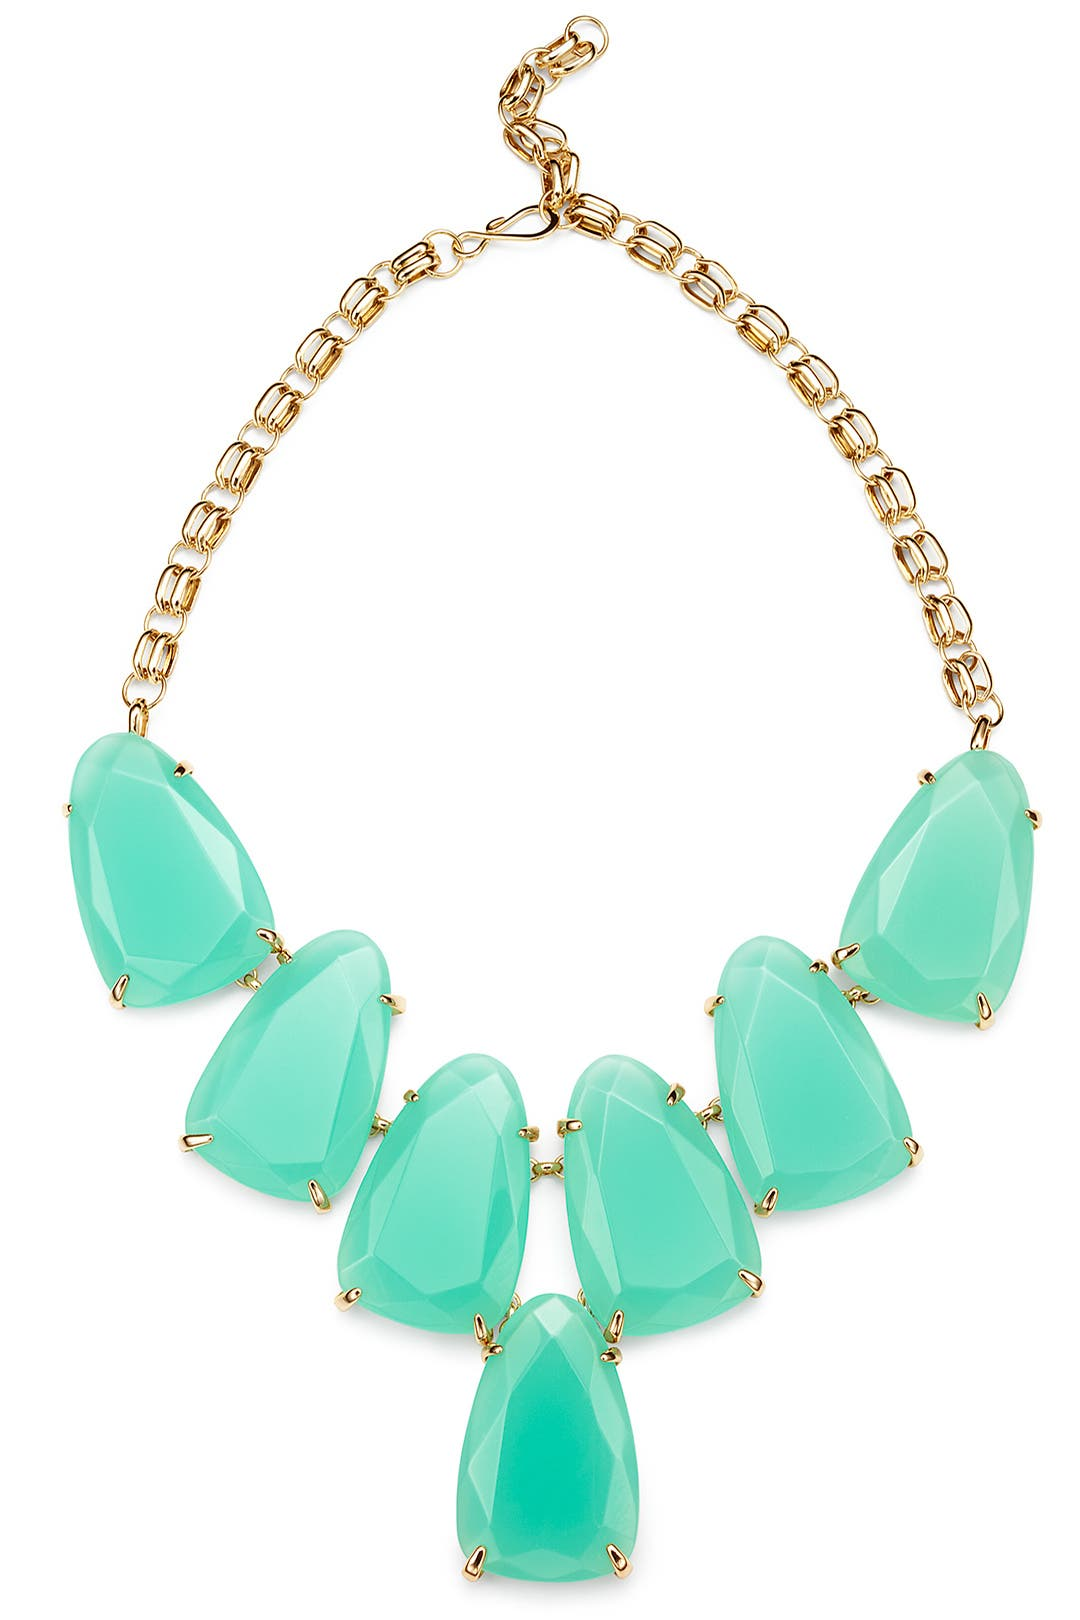 Harlow Necklace by Kendra Scott